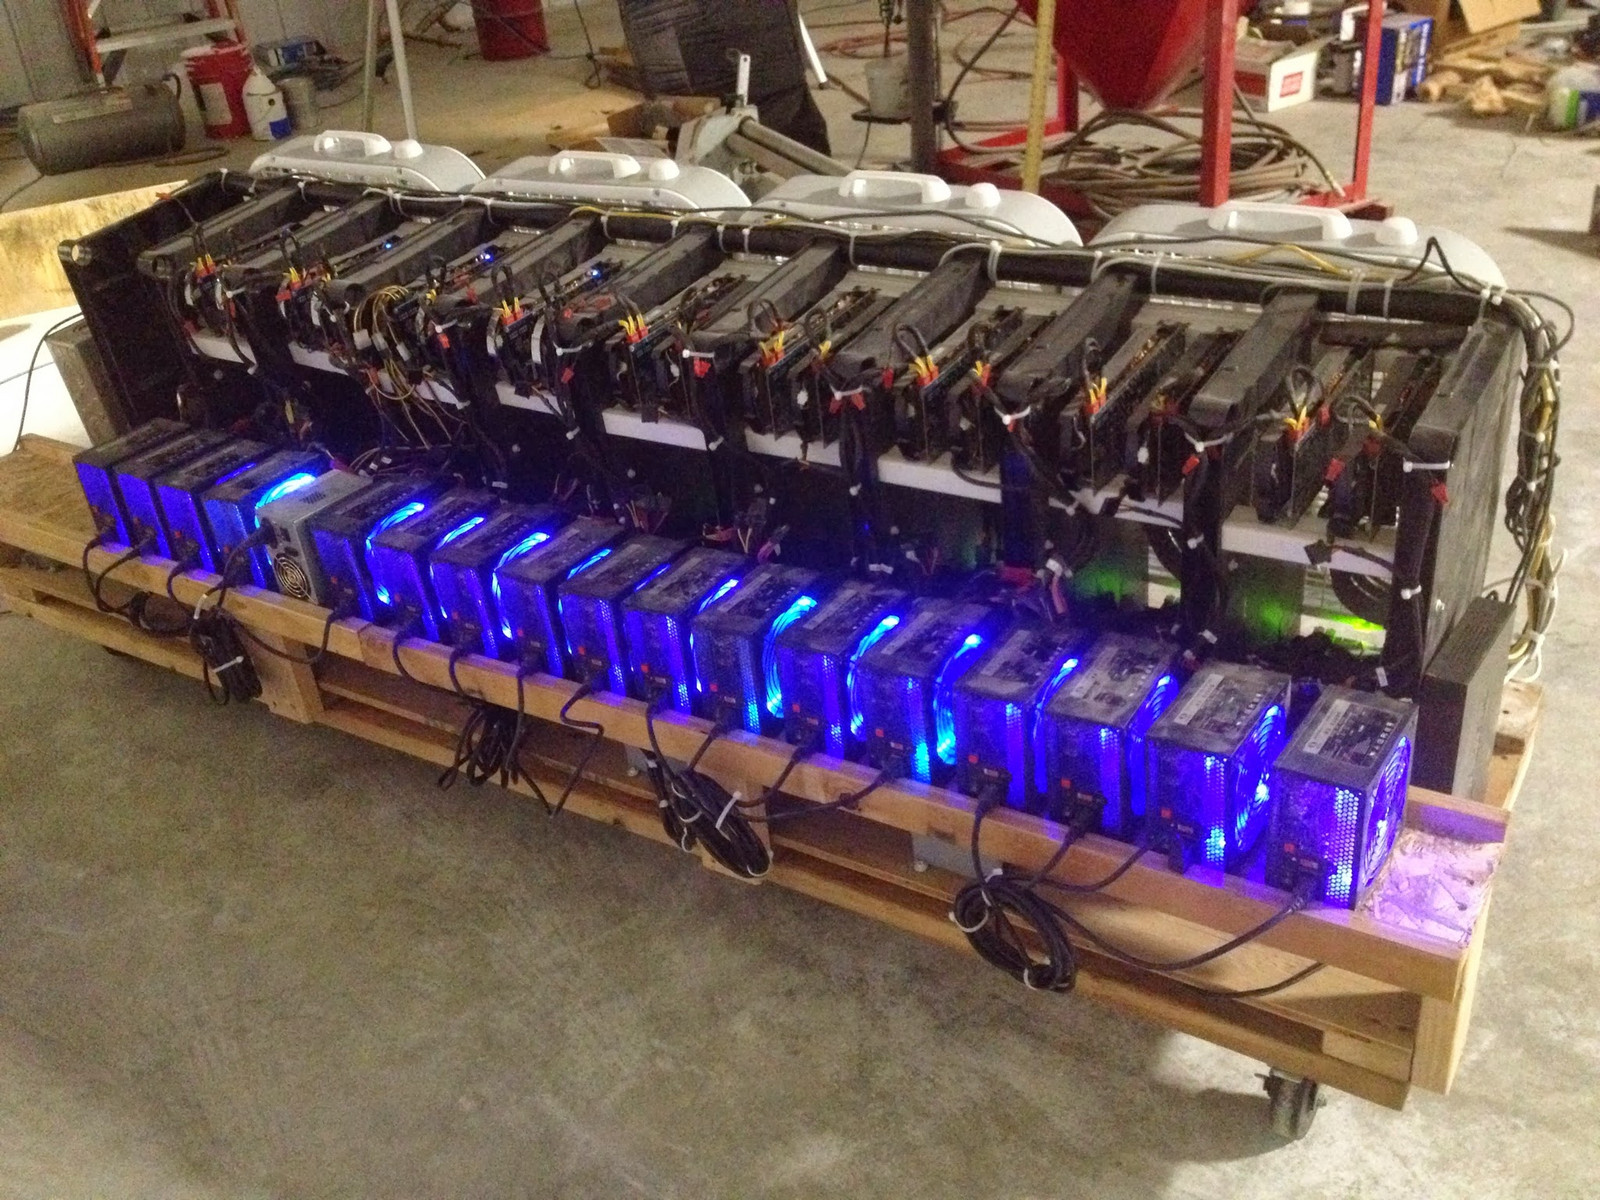 How to build an Ethereum mining rig | CryptoCompare.com